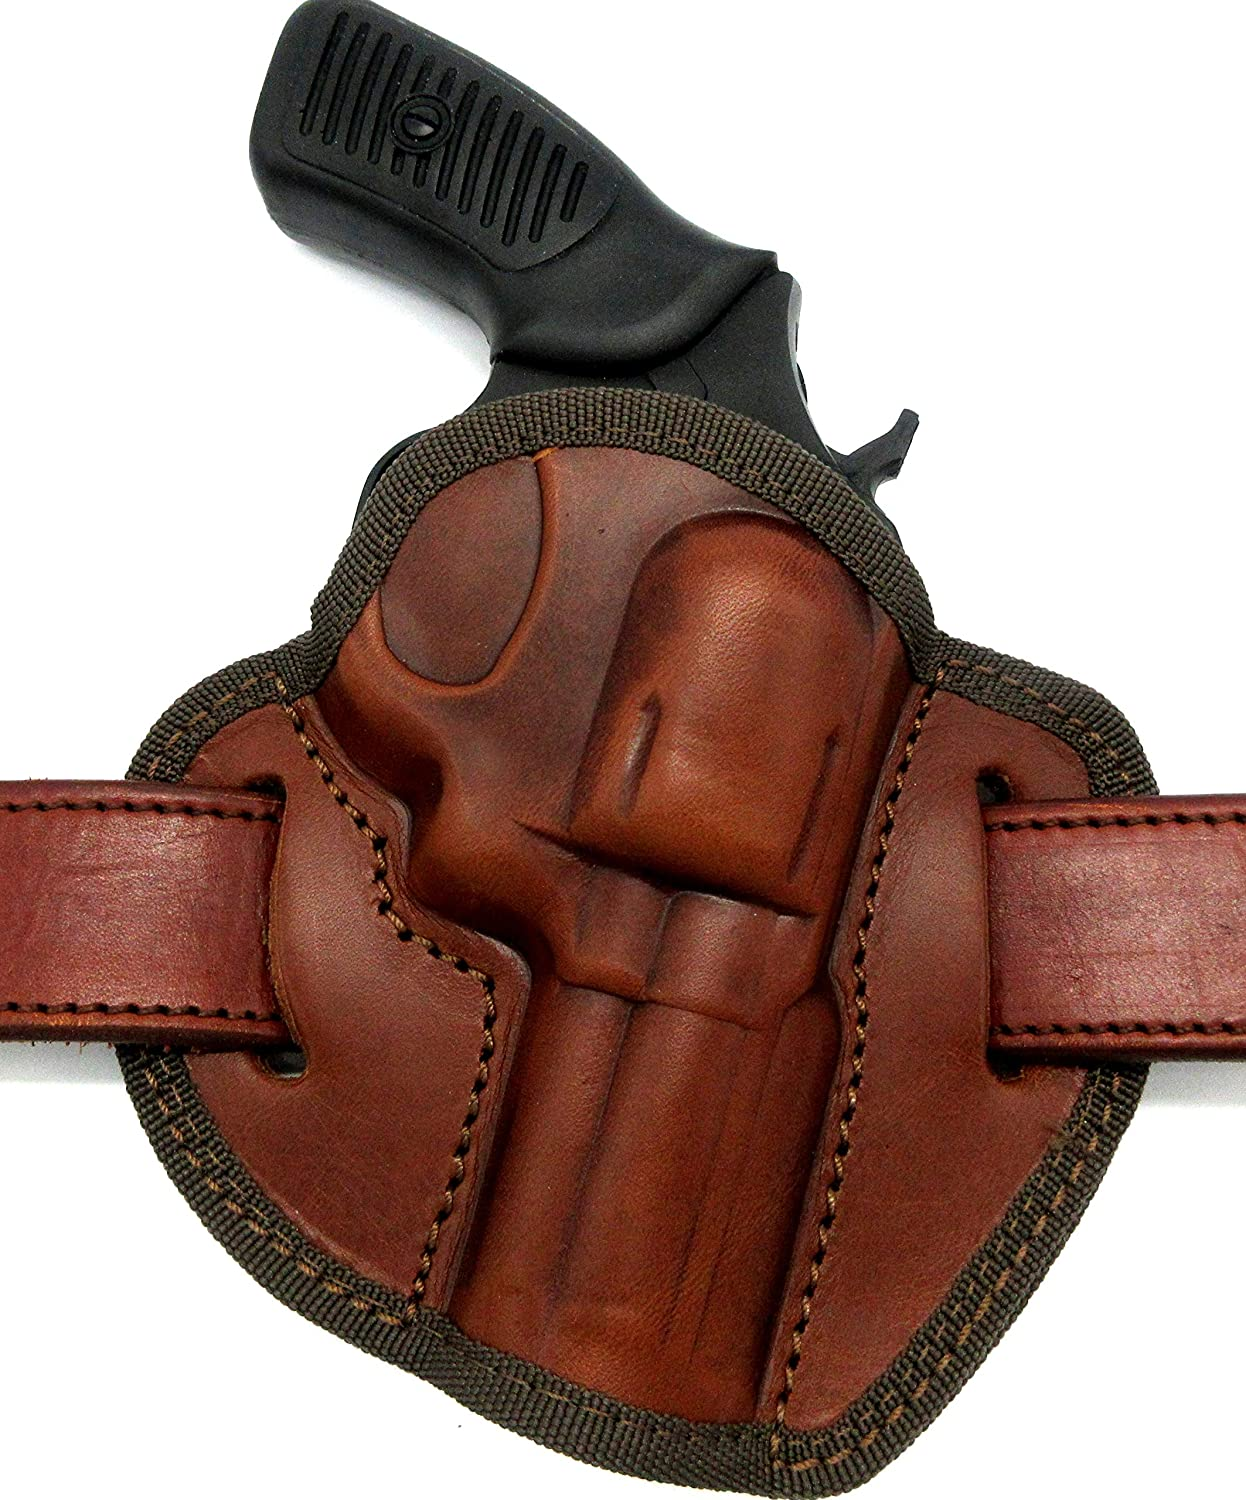 HOLSTERMART USA CEBECI ARMS Brown Leather Open Top Right OW All items free shipping Regular dealer Hand